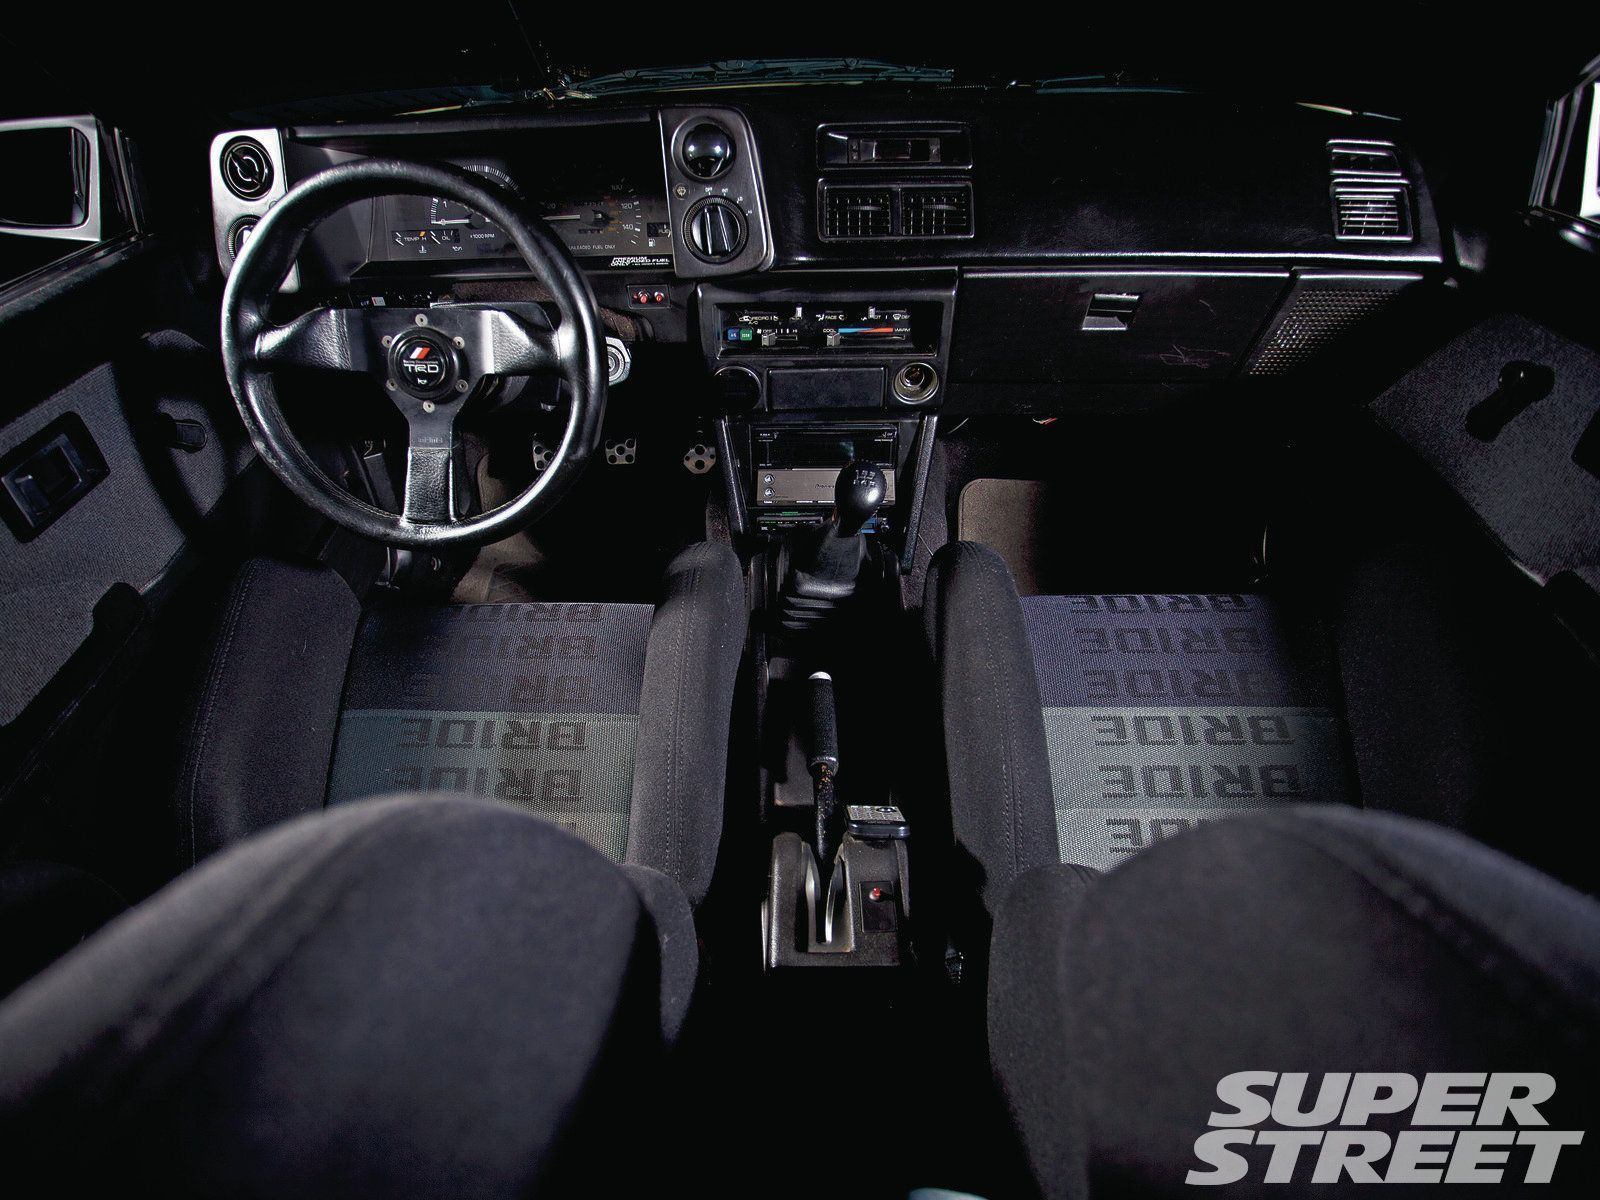 Pin by Andrew Fin on AE86 | Ae86, Toyota, Cars